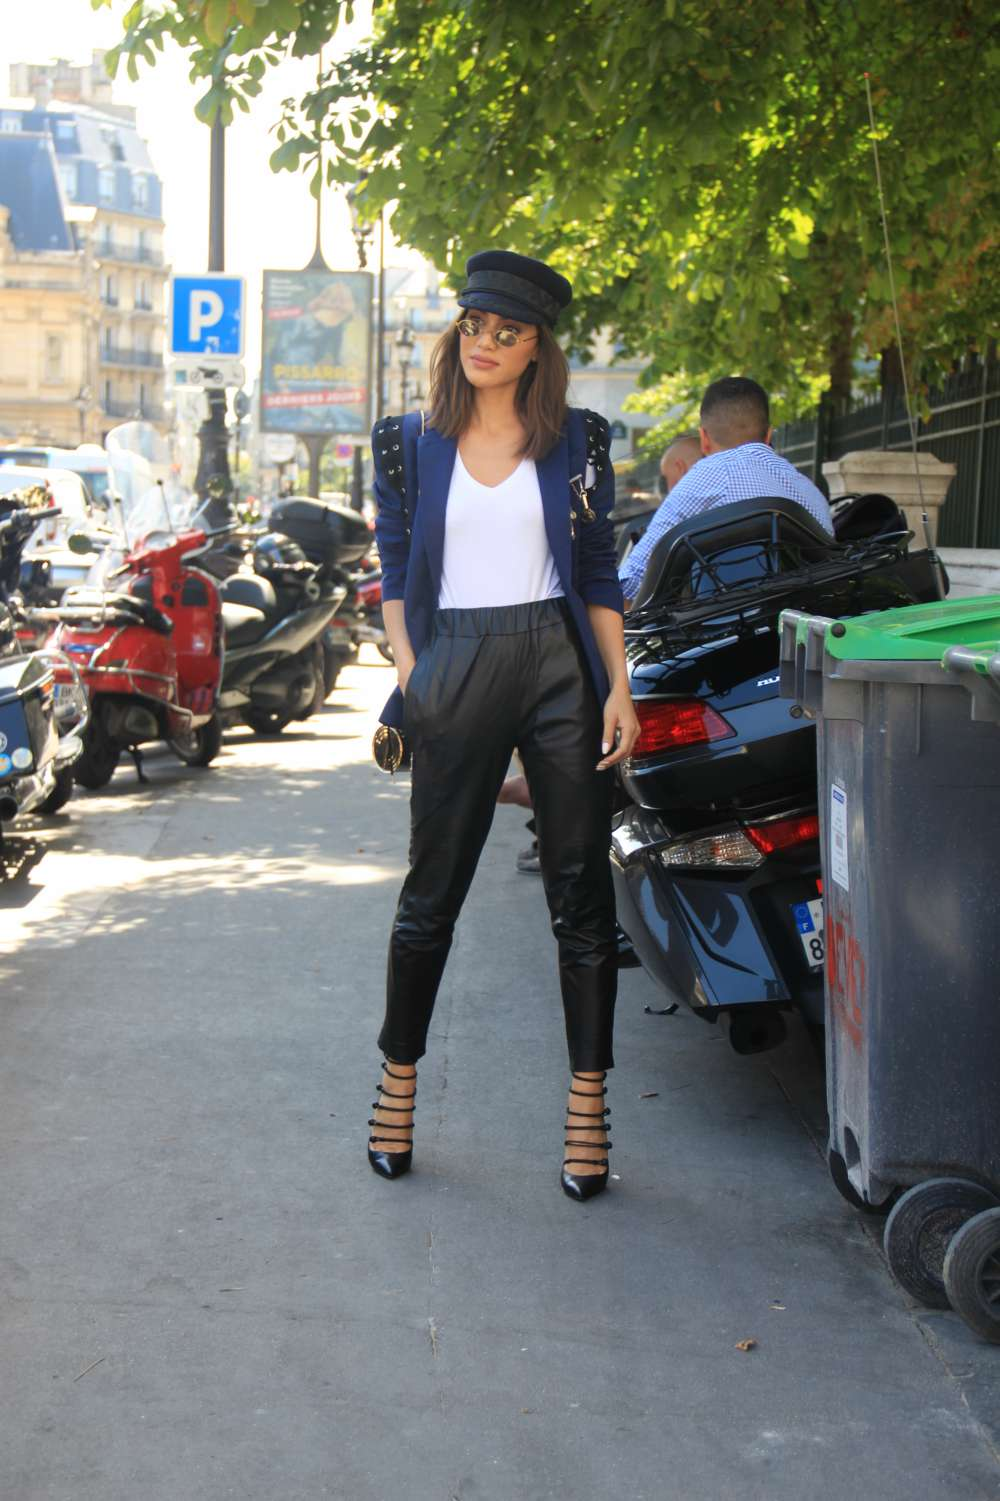 LOOK XLVI: Camila Coelho steps up her blazer game